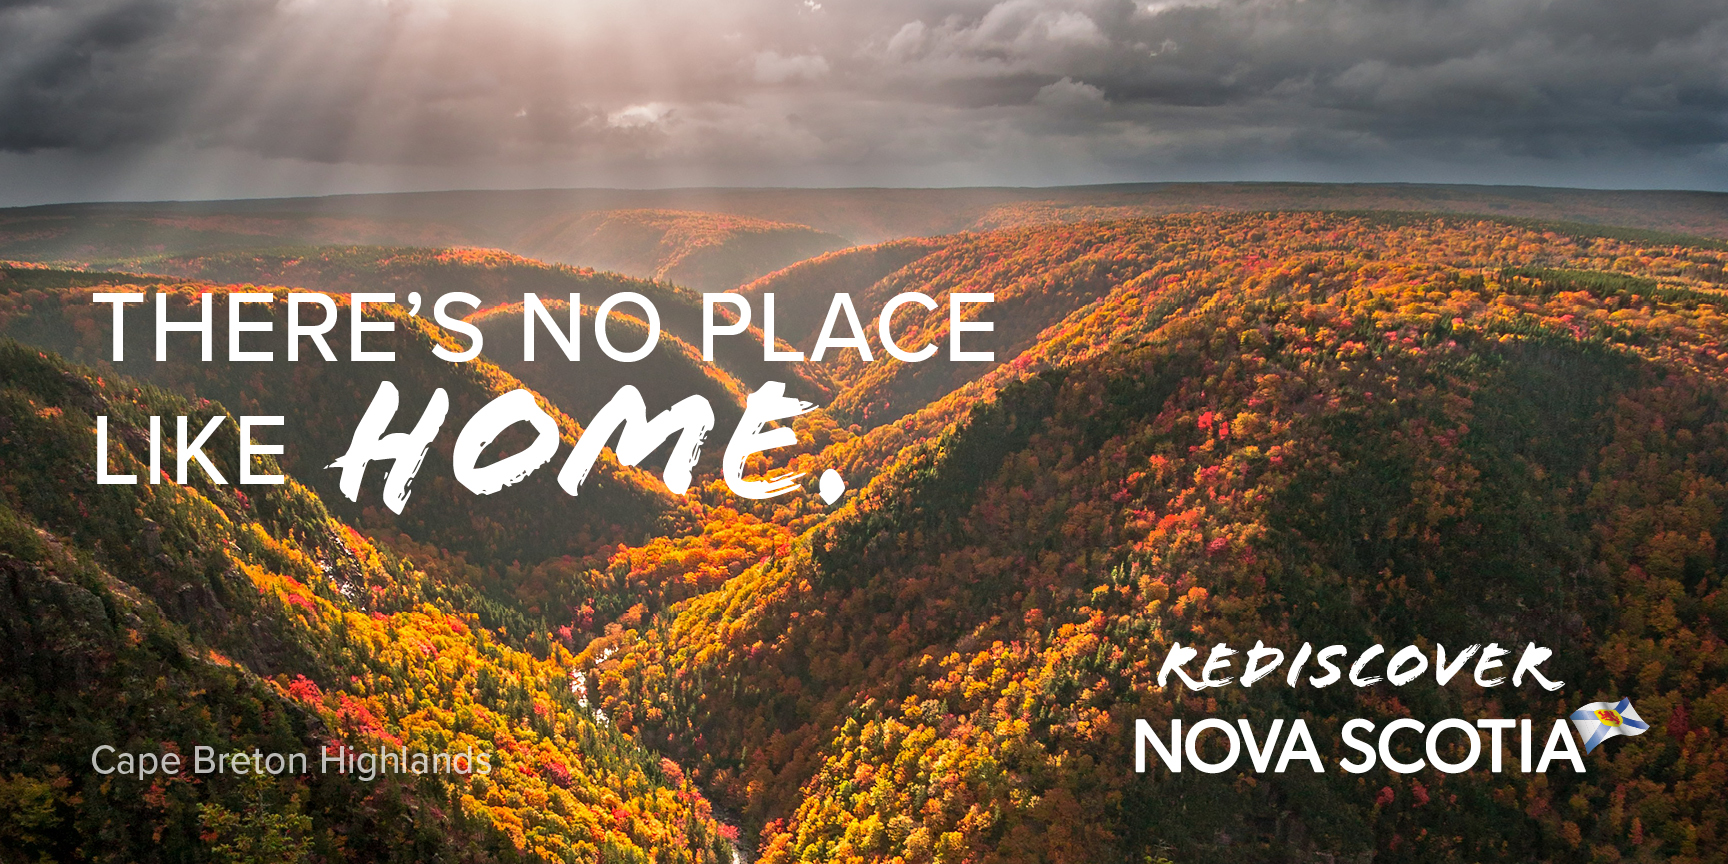 Cape Breton Highlands in the fall. Rediscover Nova Scotia.